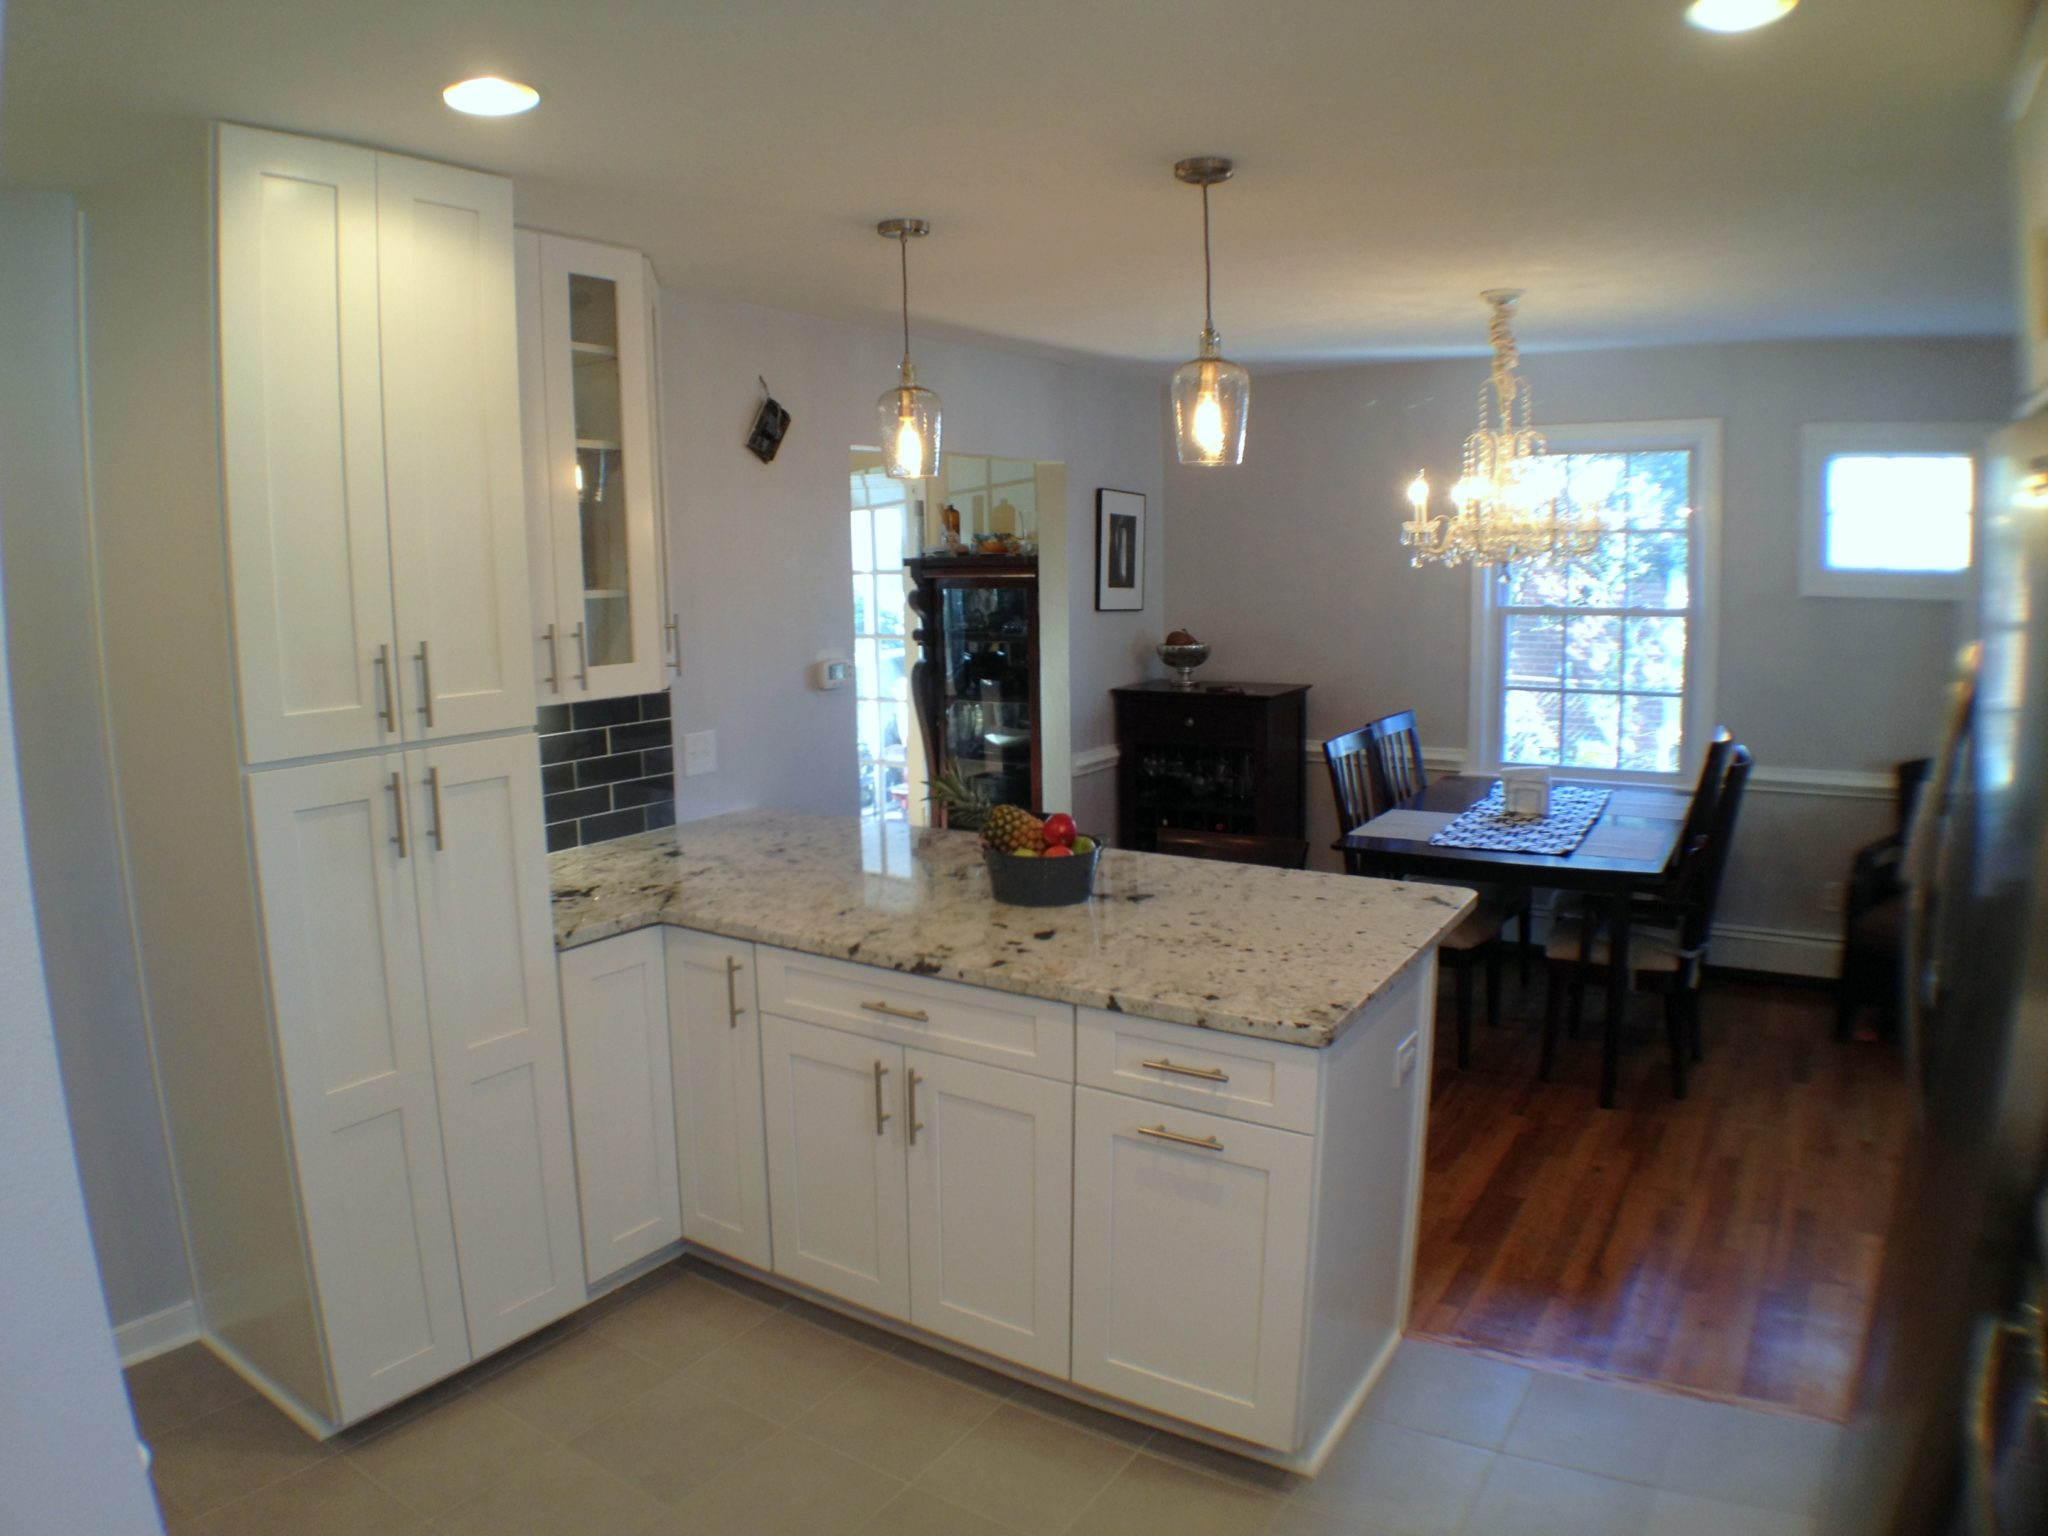 Westview Manor Kitchen Remodel